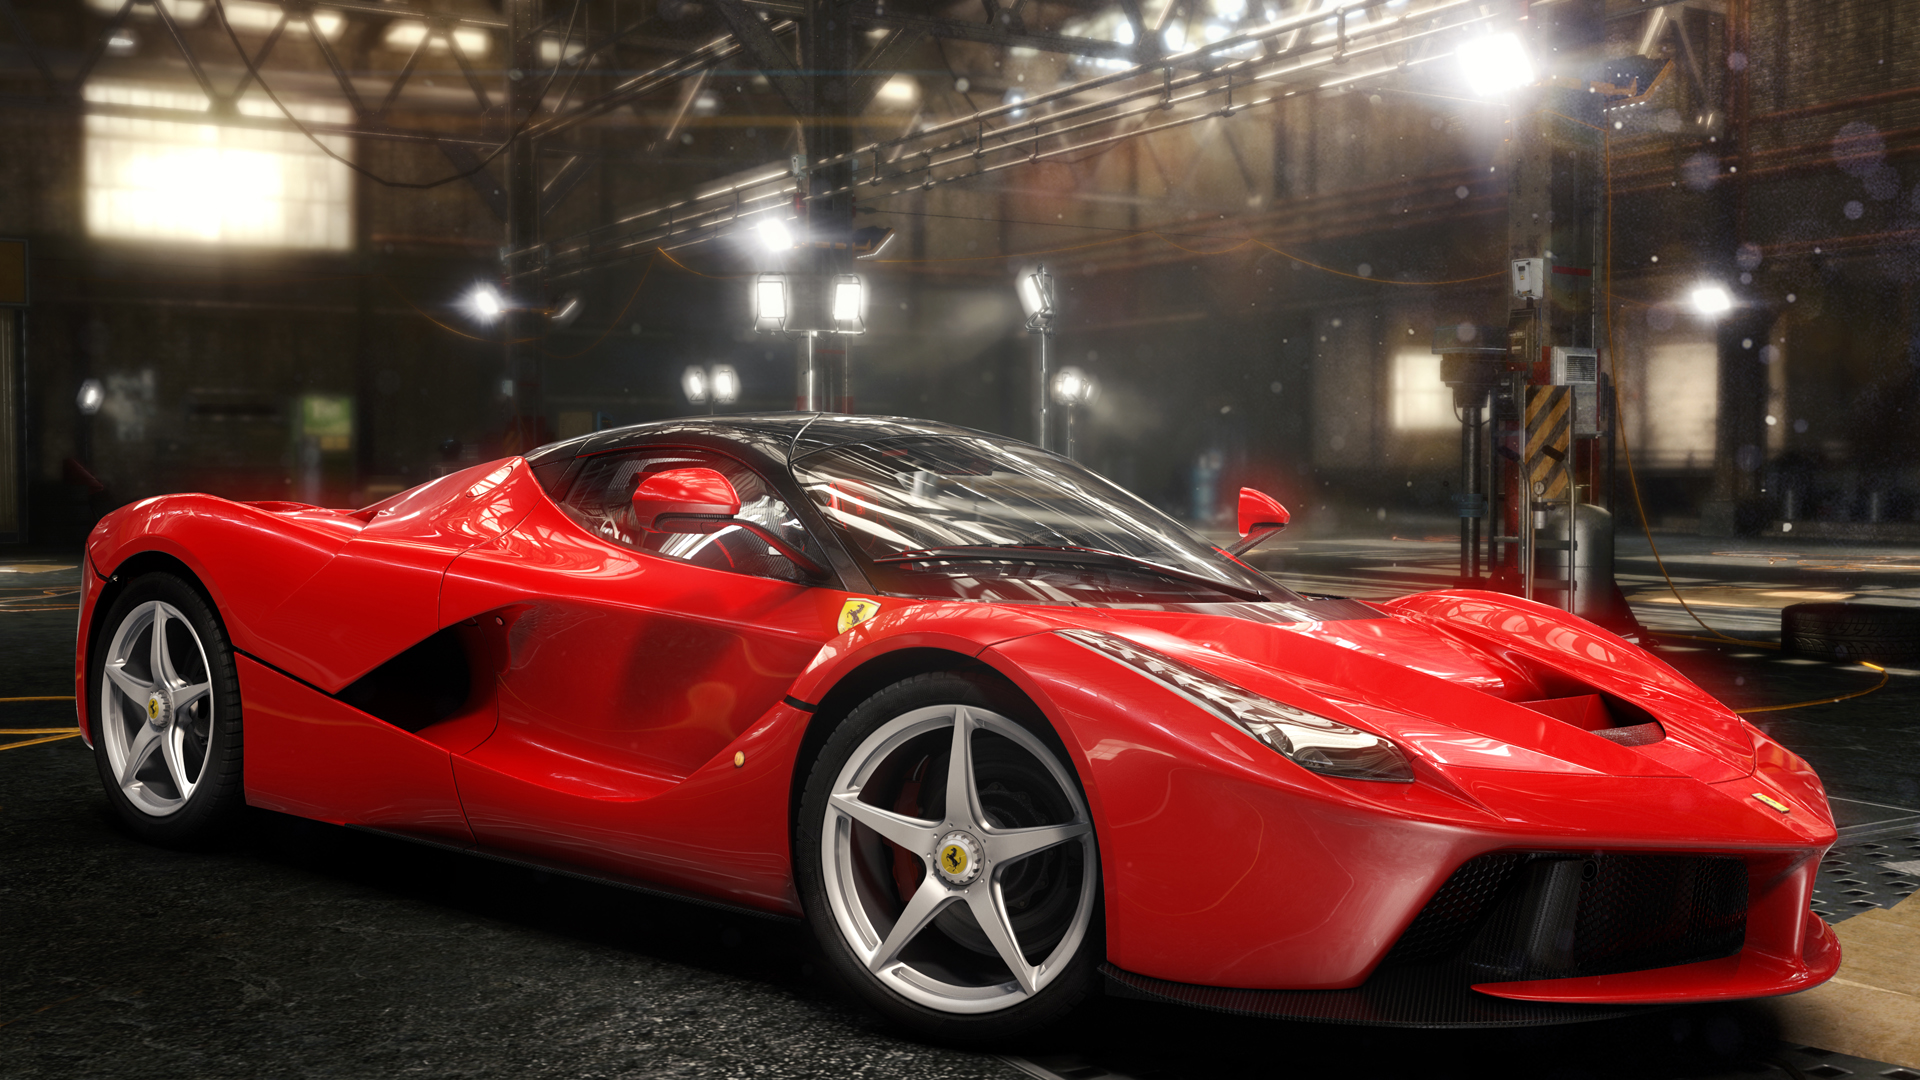 Amazing FERRARI LAFERRARI Full Big